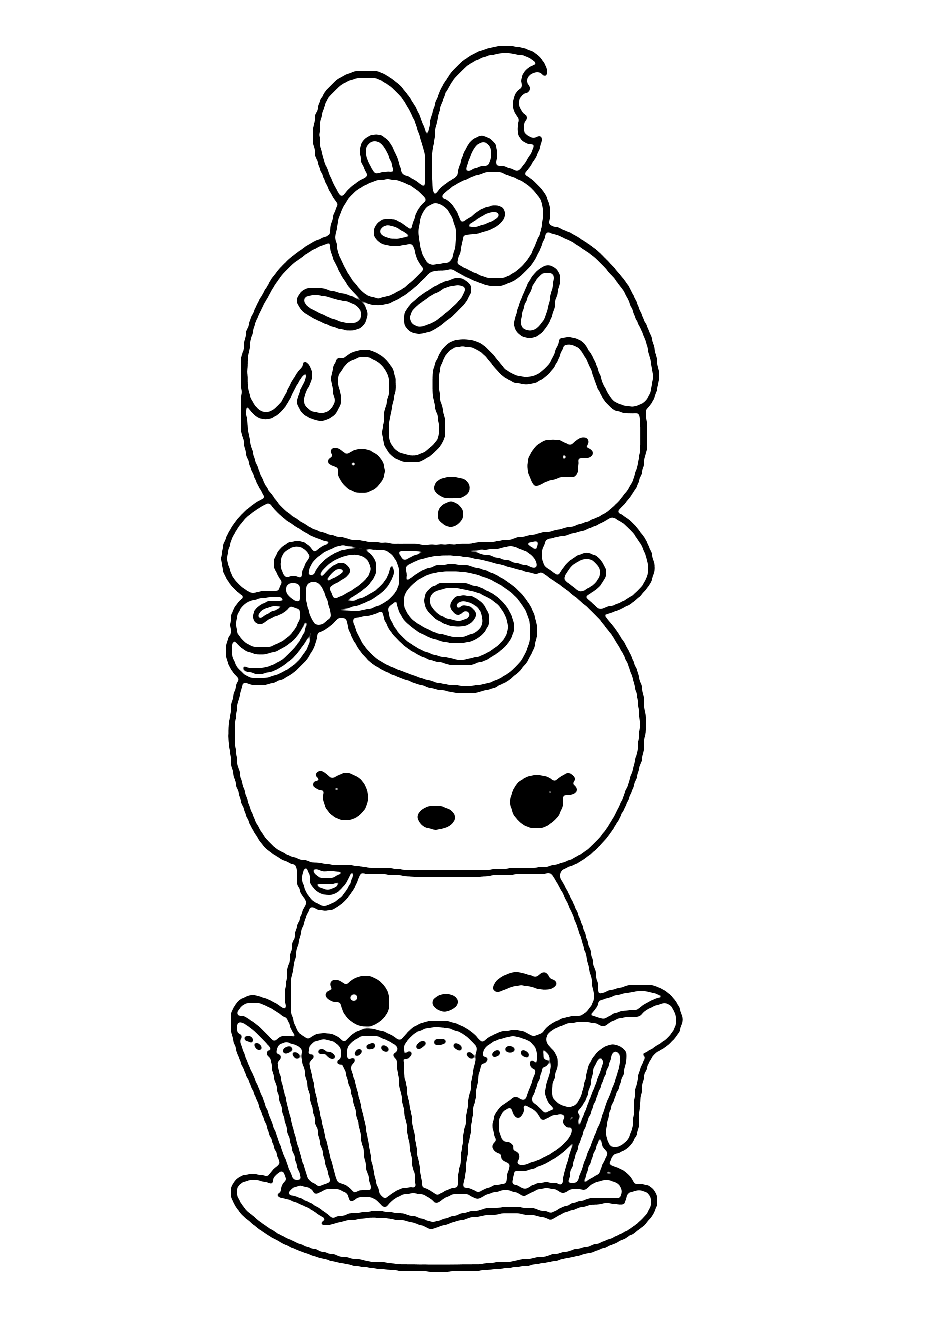 Cute Olaf Coloring Pages - Bowstomatch